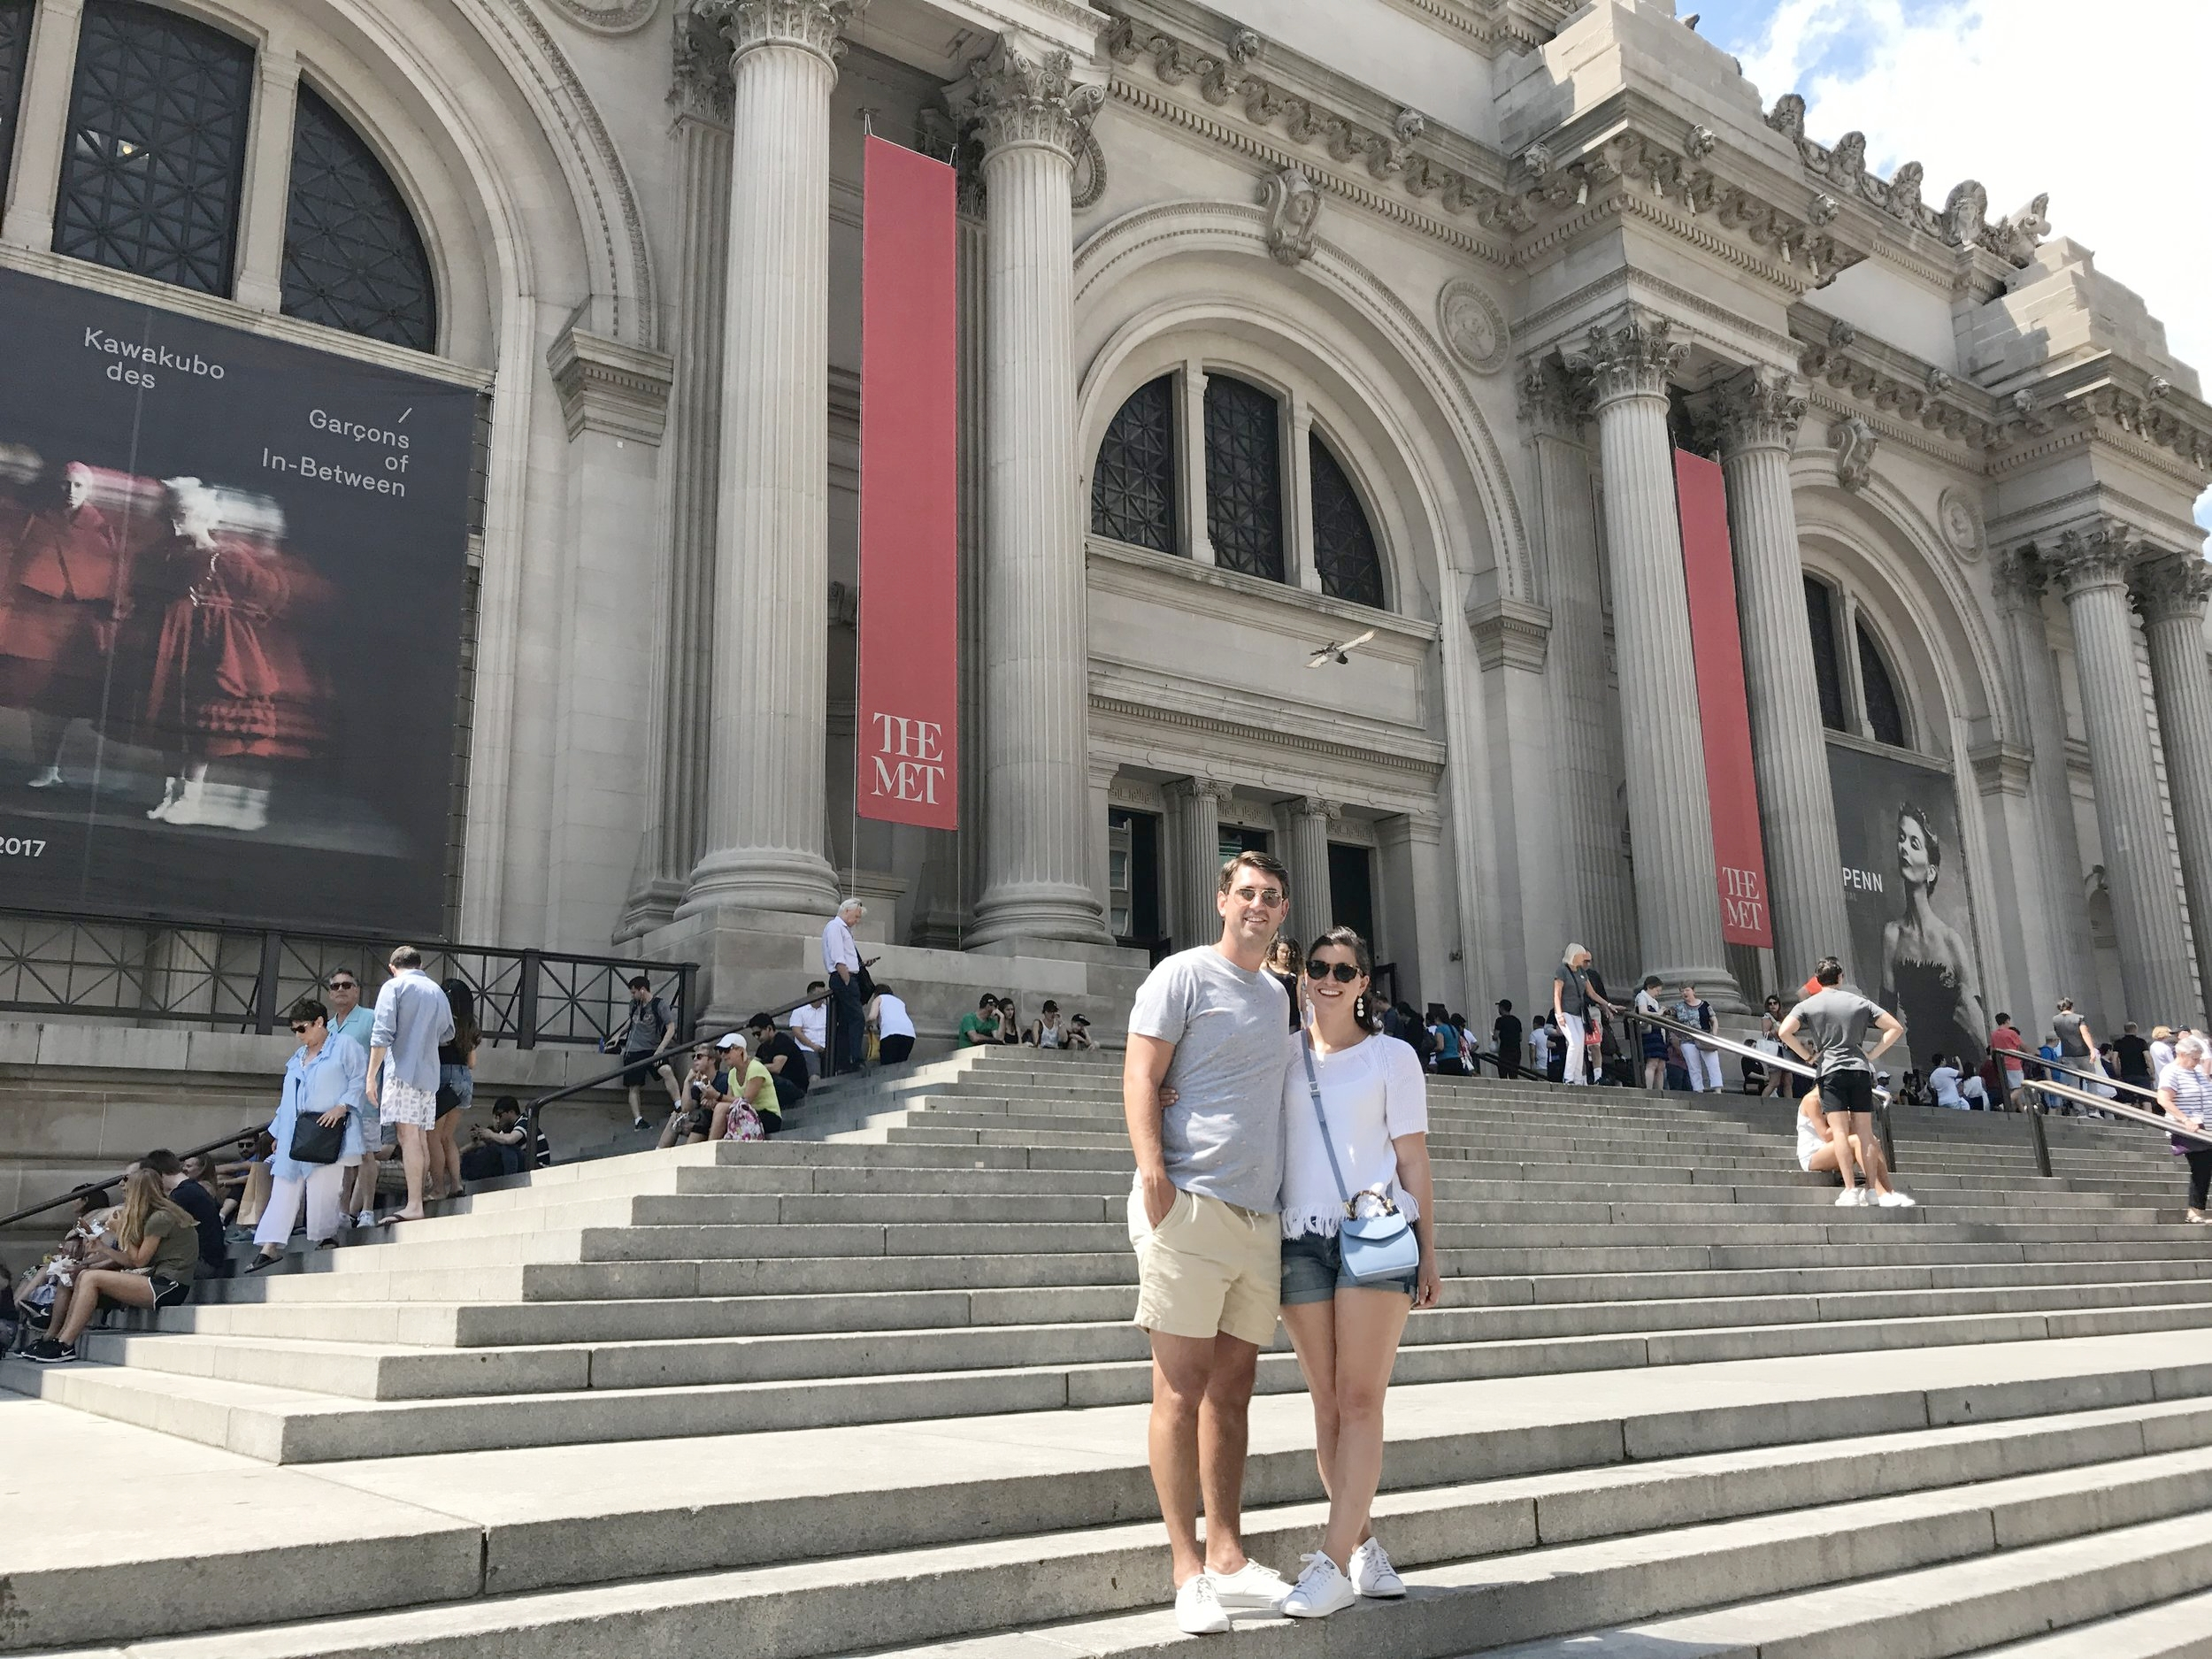 On the steps at the Metropolitan Art Museum